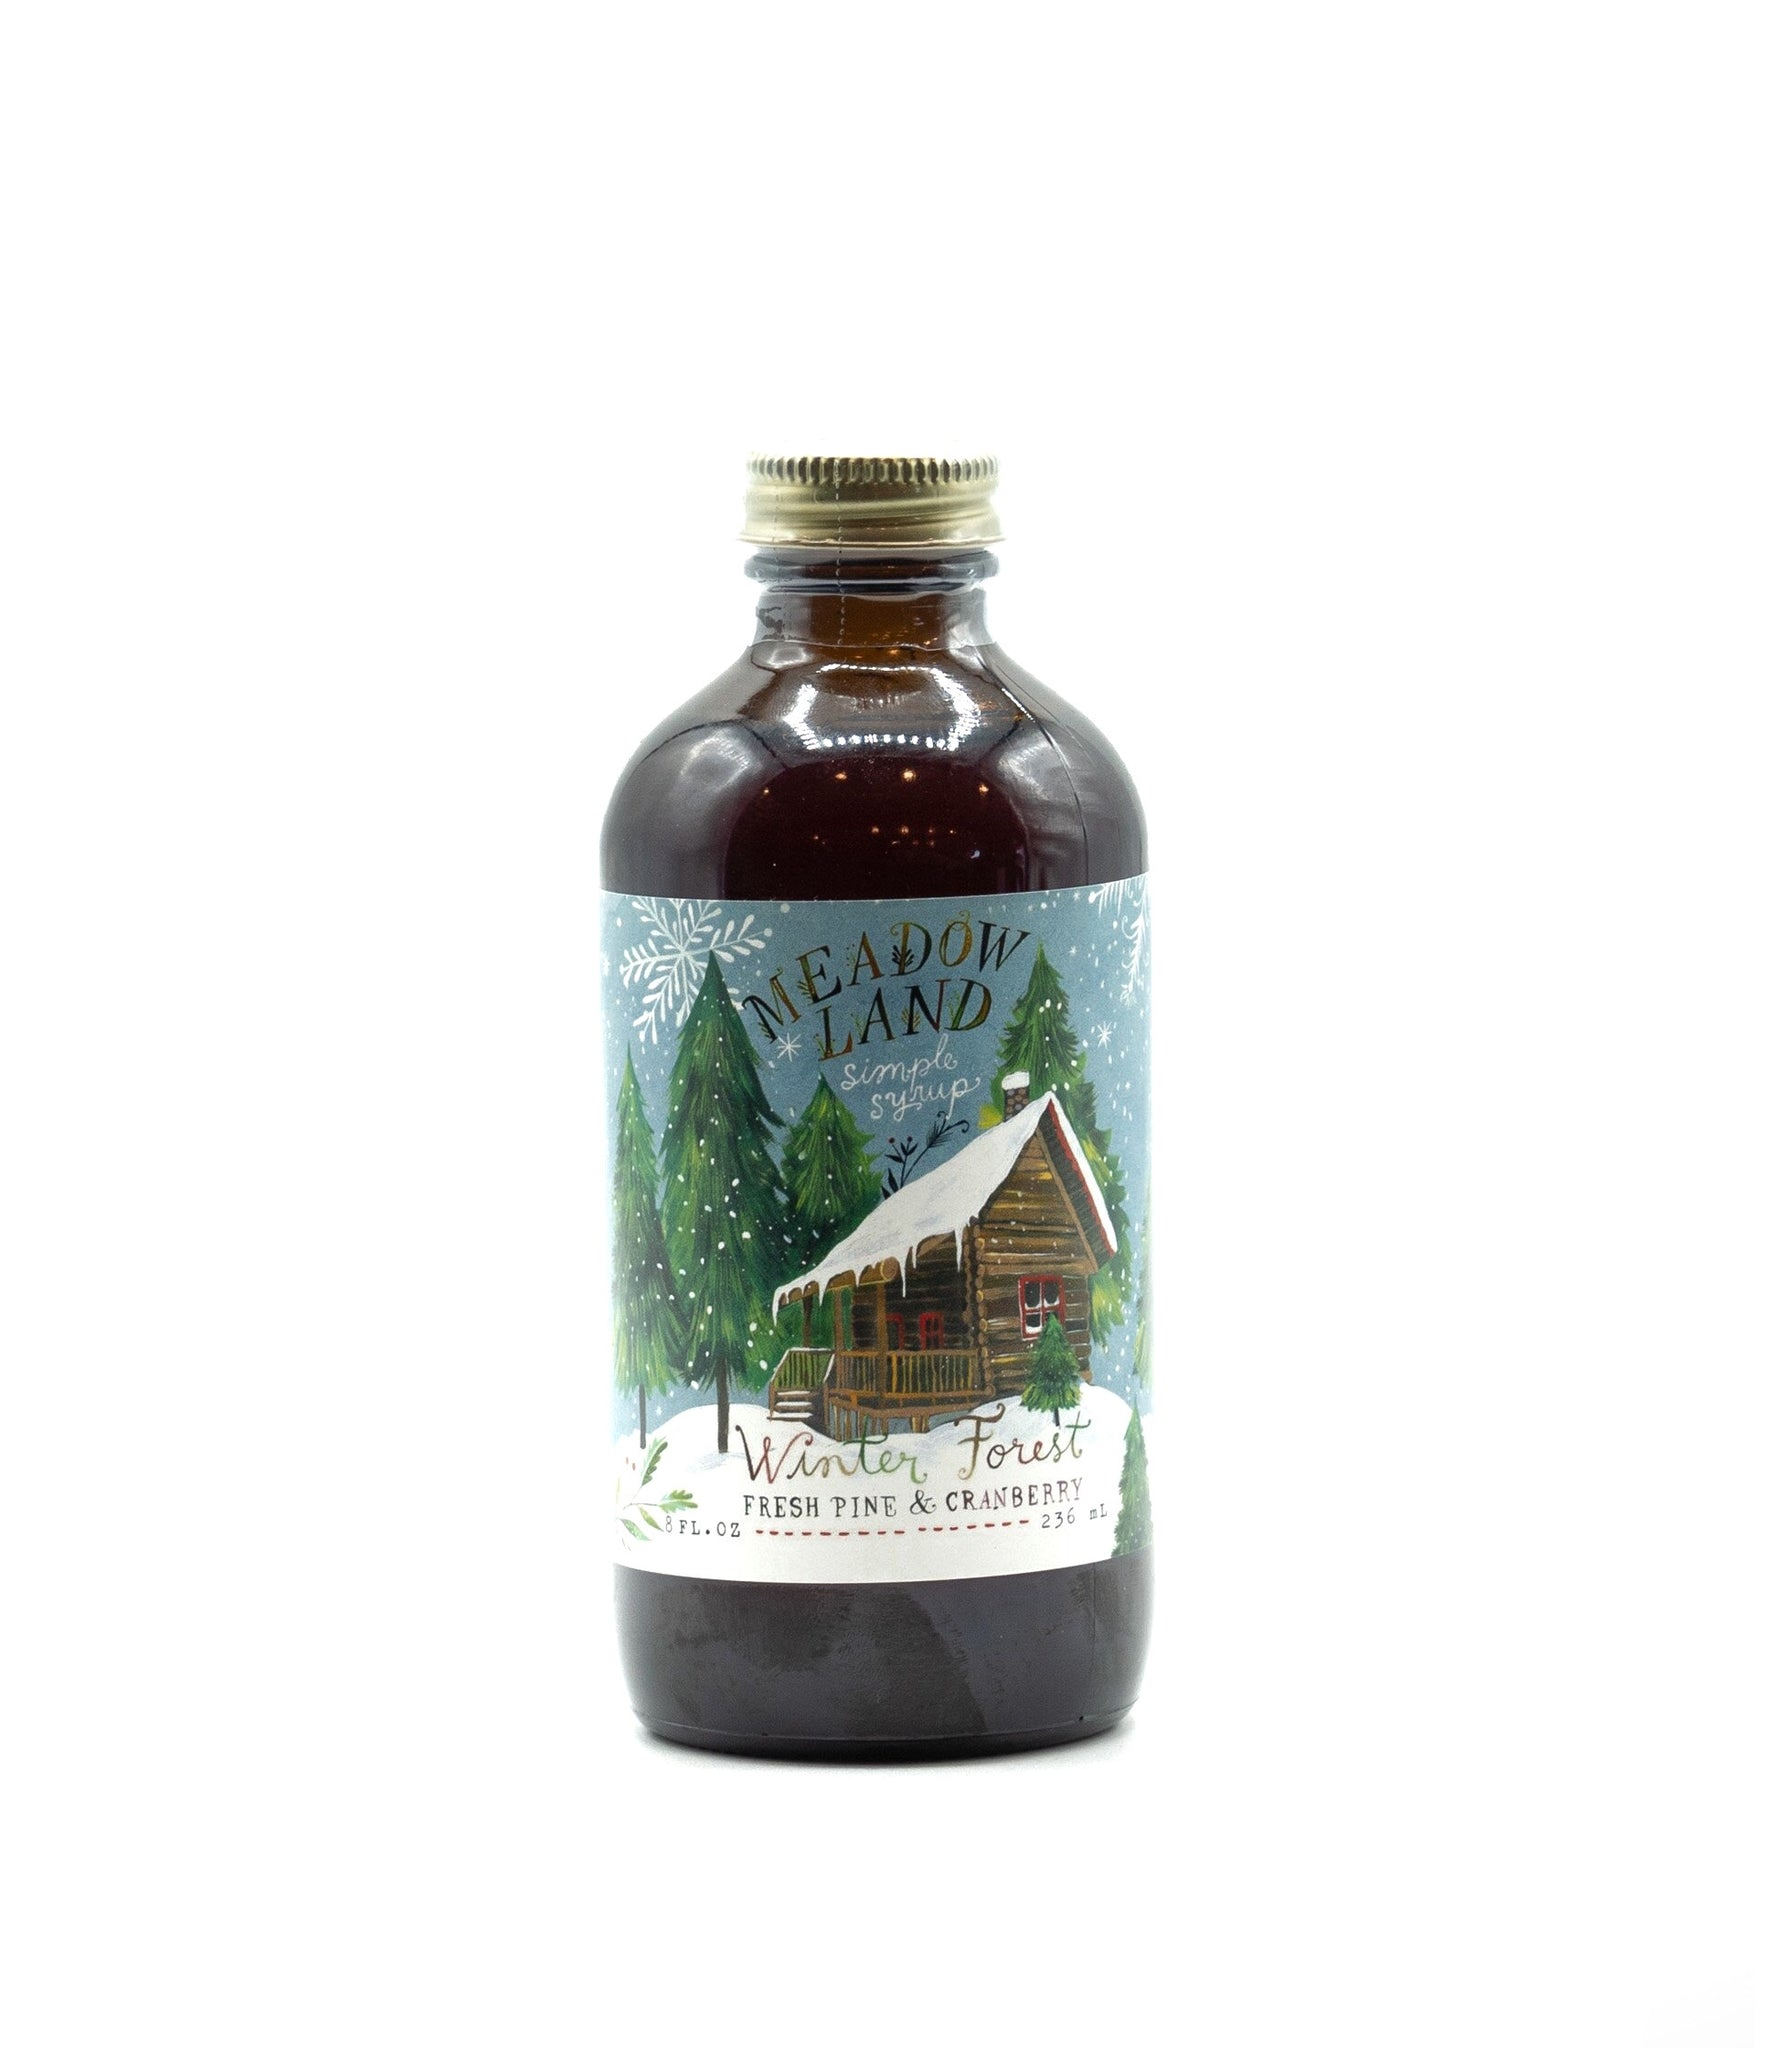 Winter Forest Simple Syrup